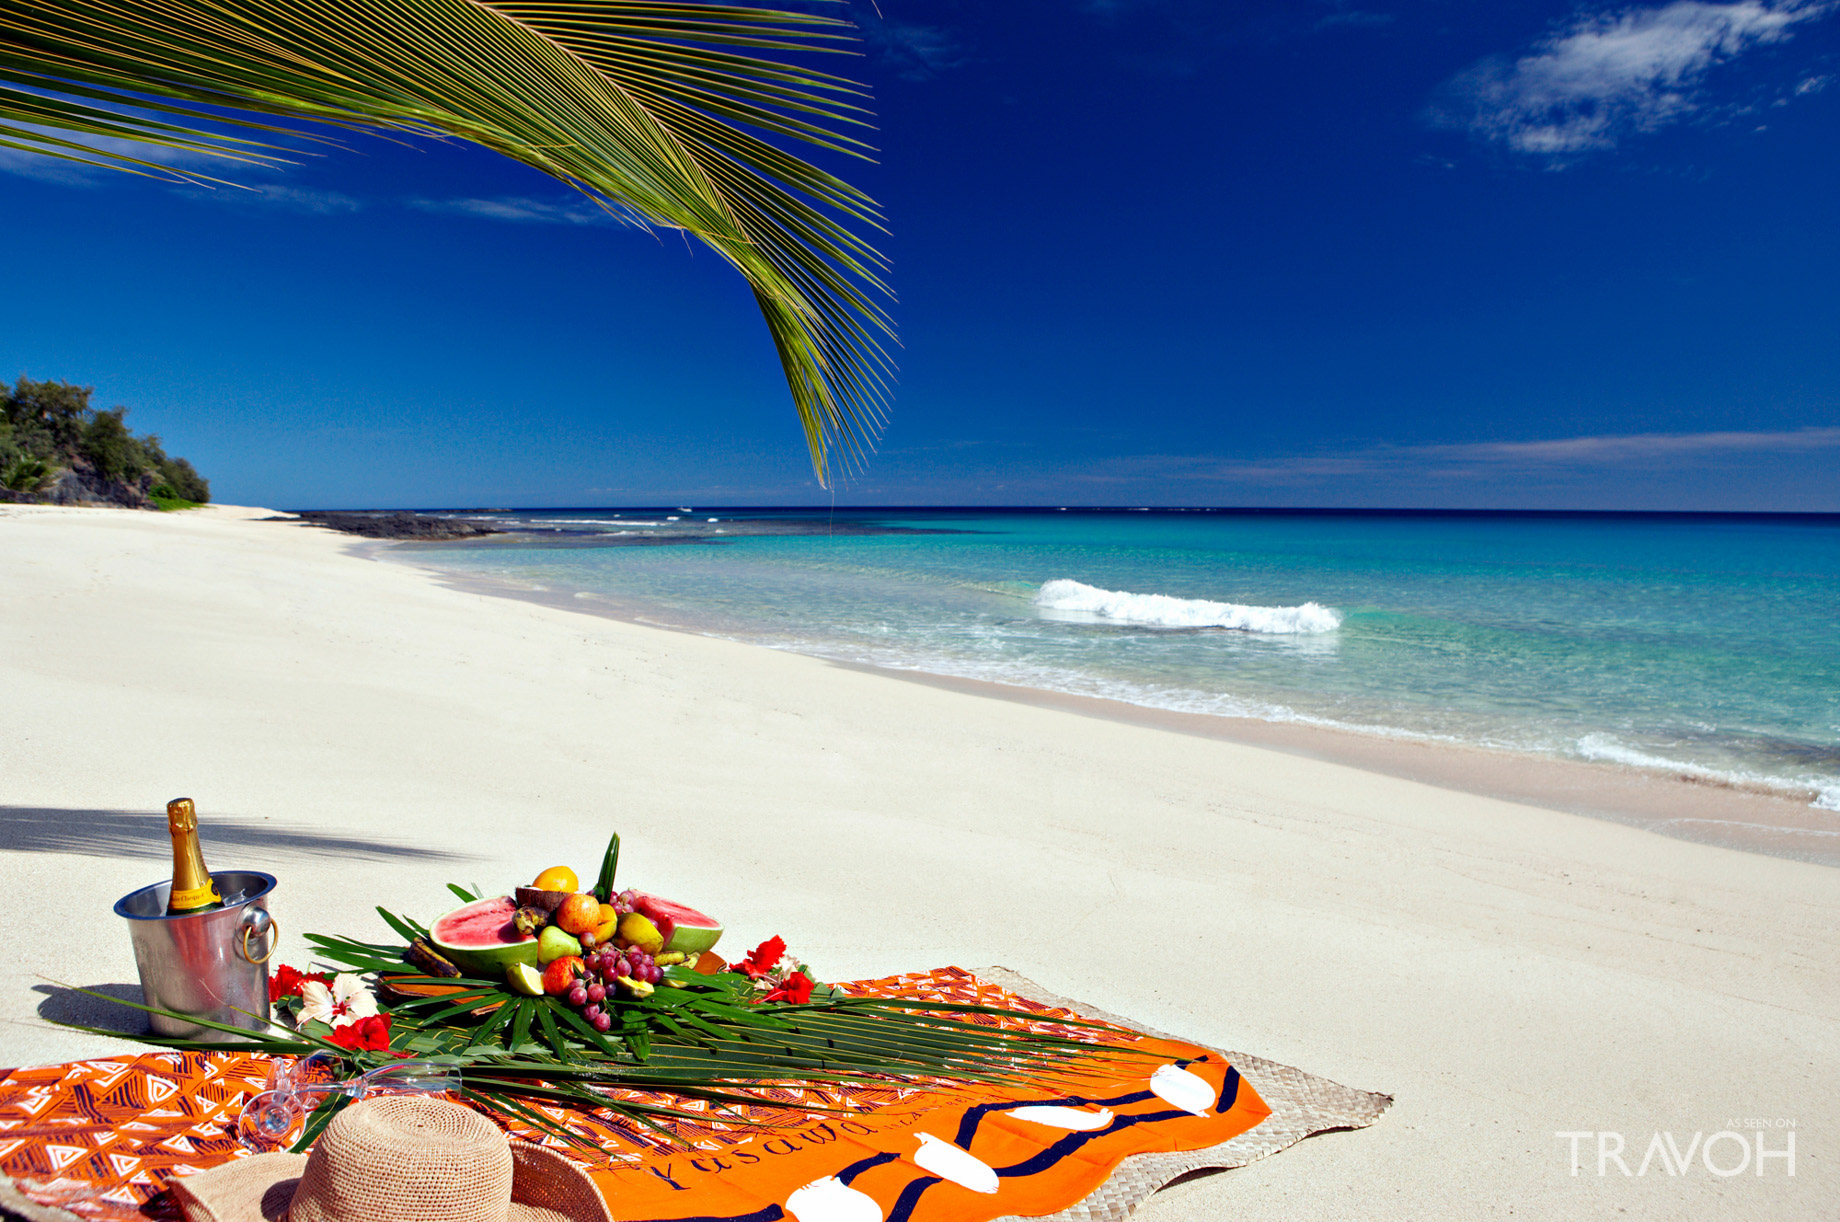 Yasawa Island Resort - Exploring 10 of the Top Beach Locations on the Islands of Fiji